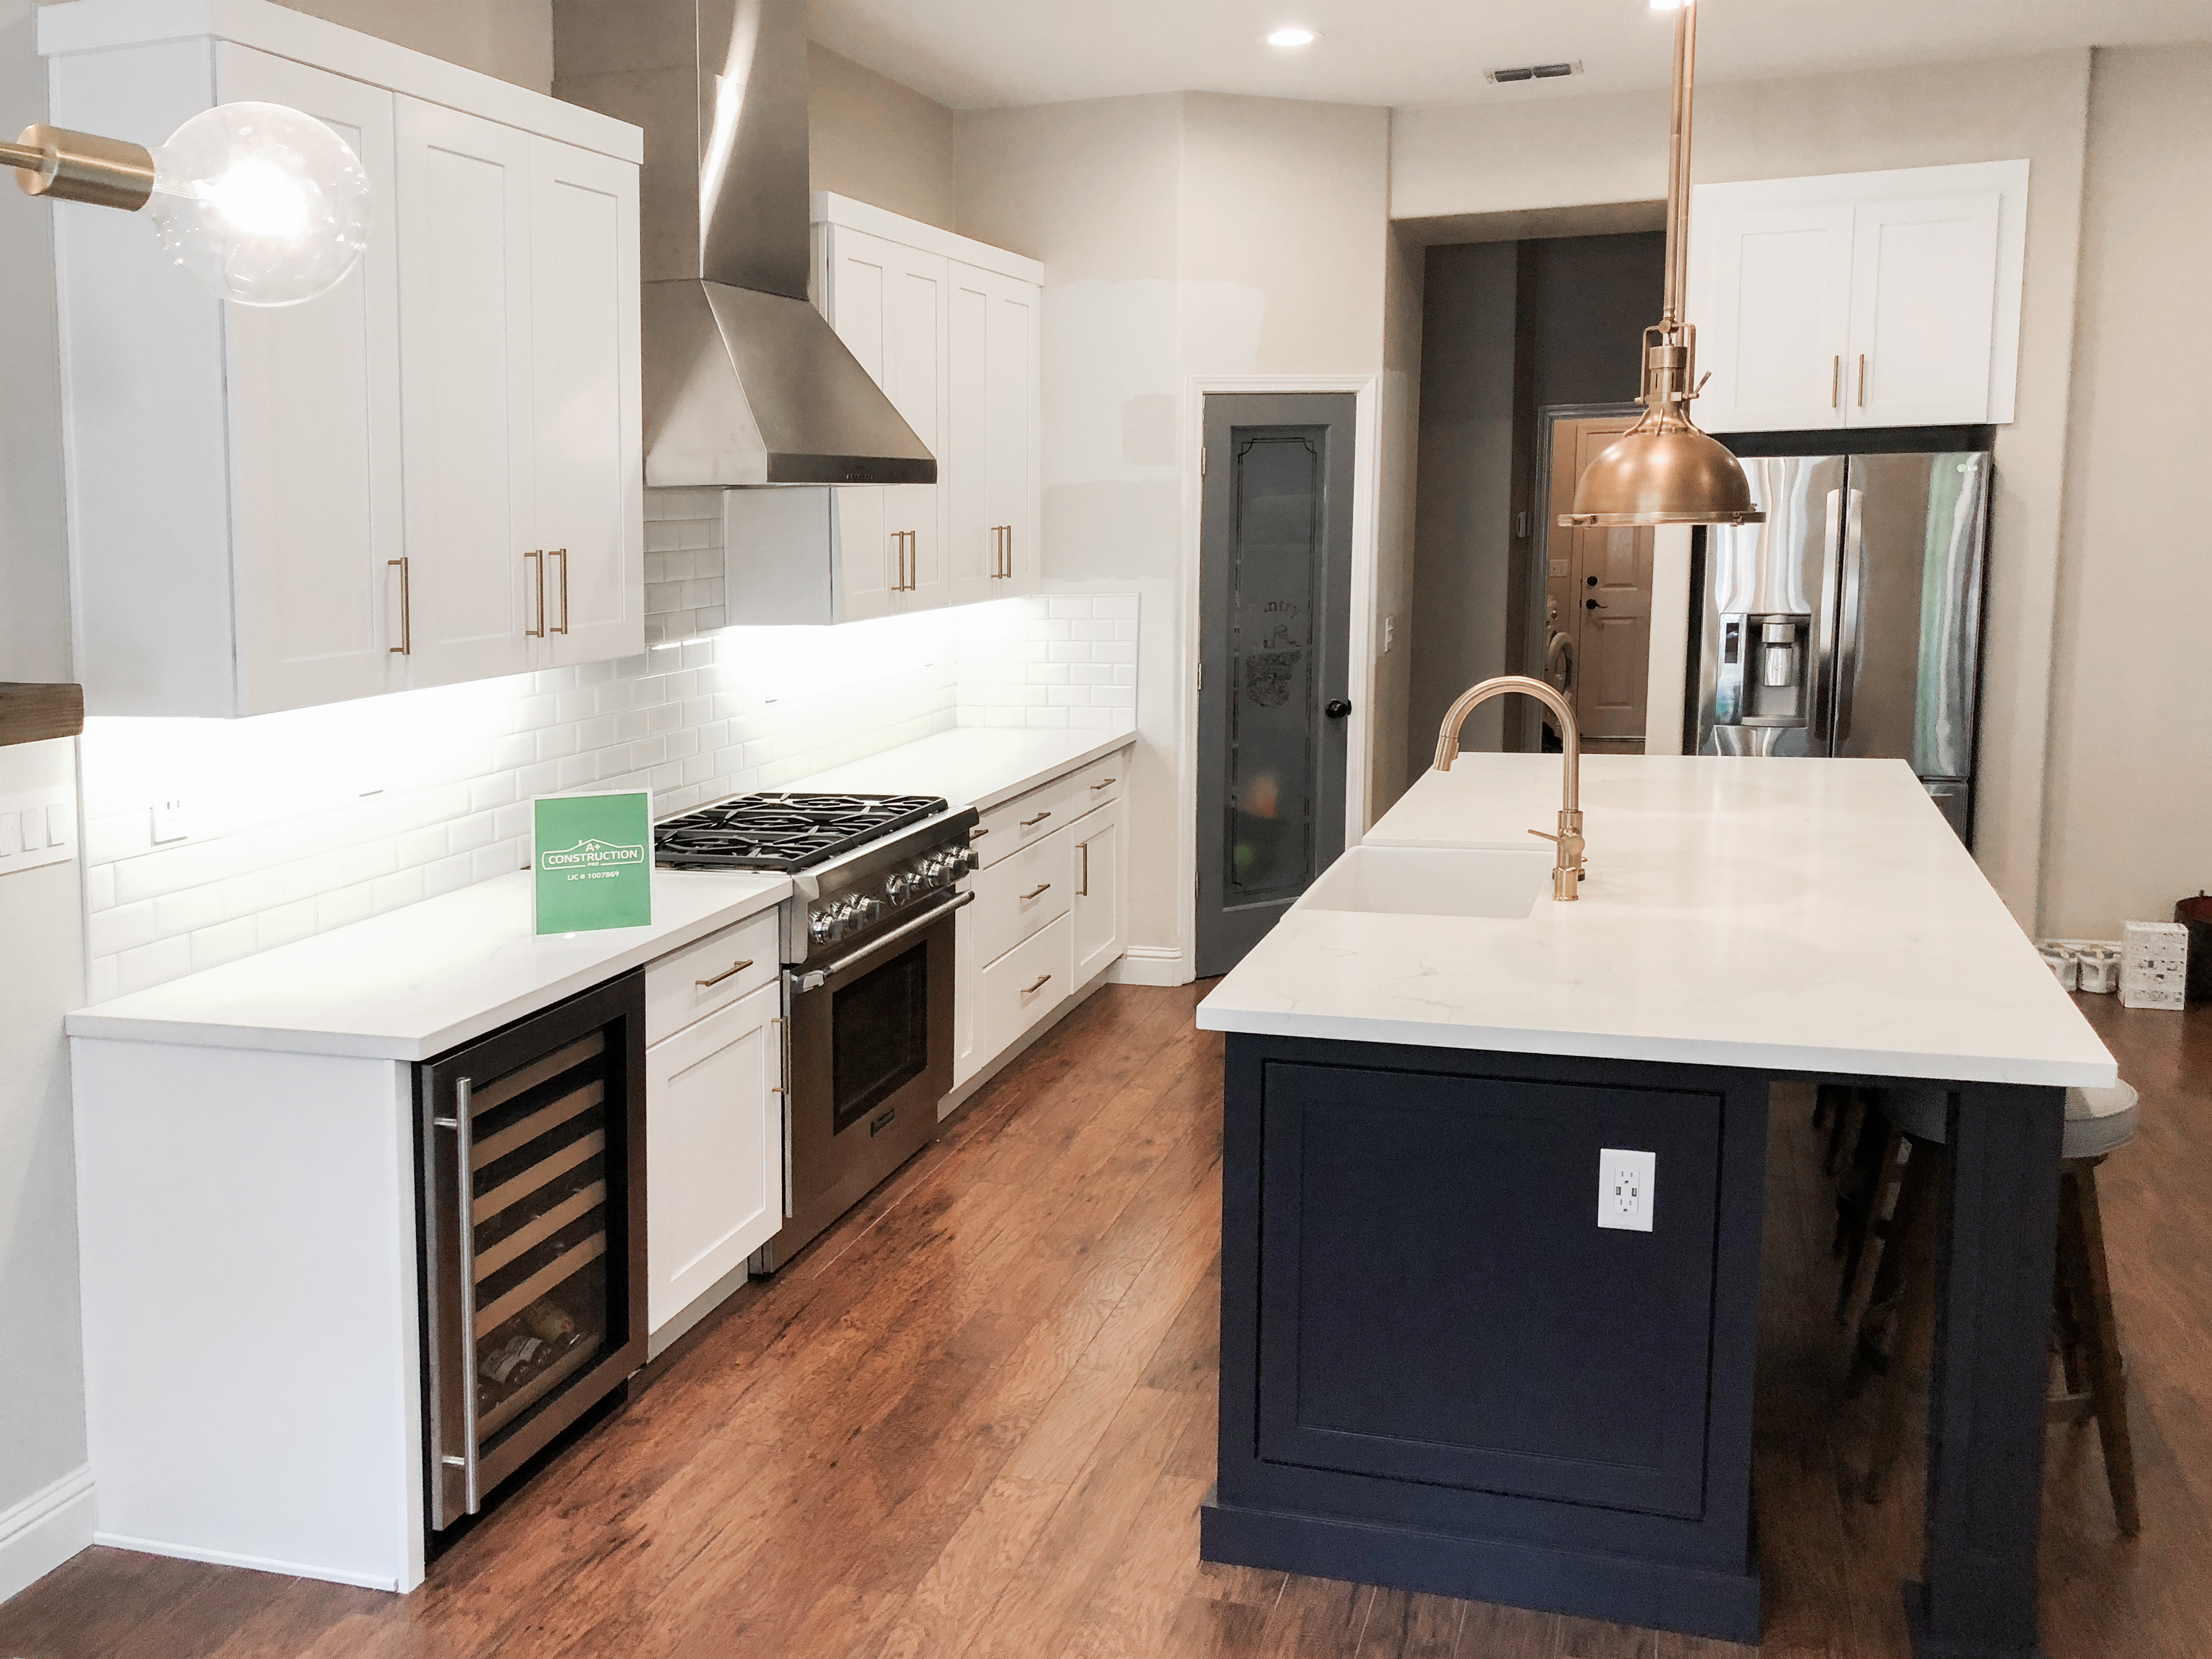 Kitchen Remodel With Custom Cabinets In Roseville, Ca